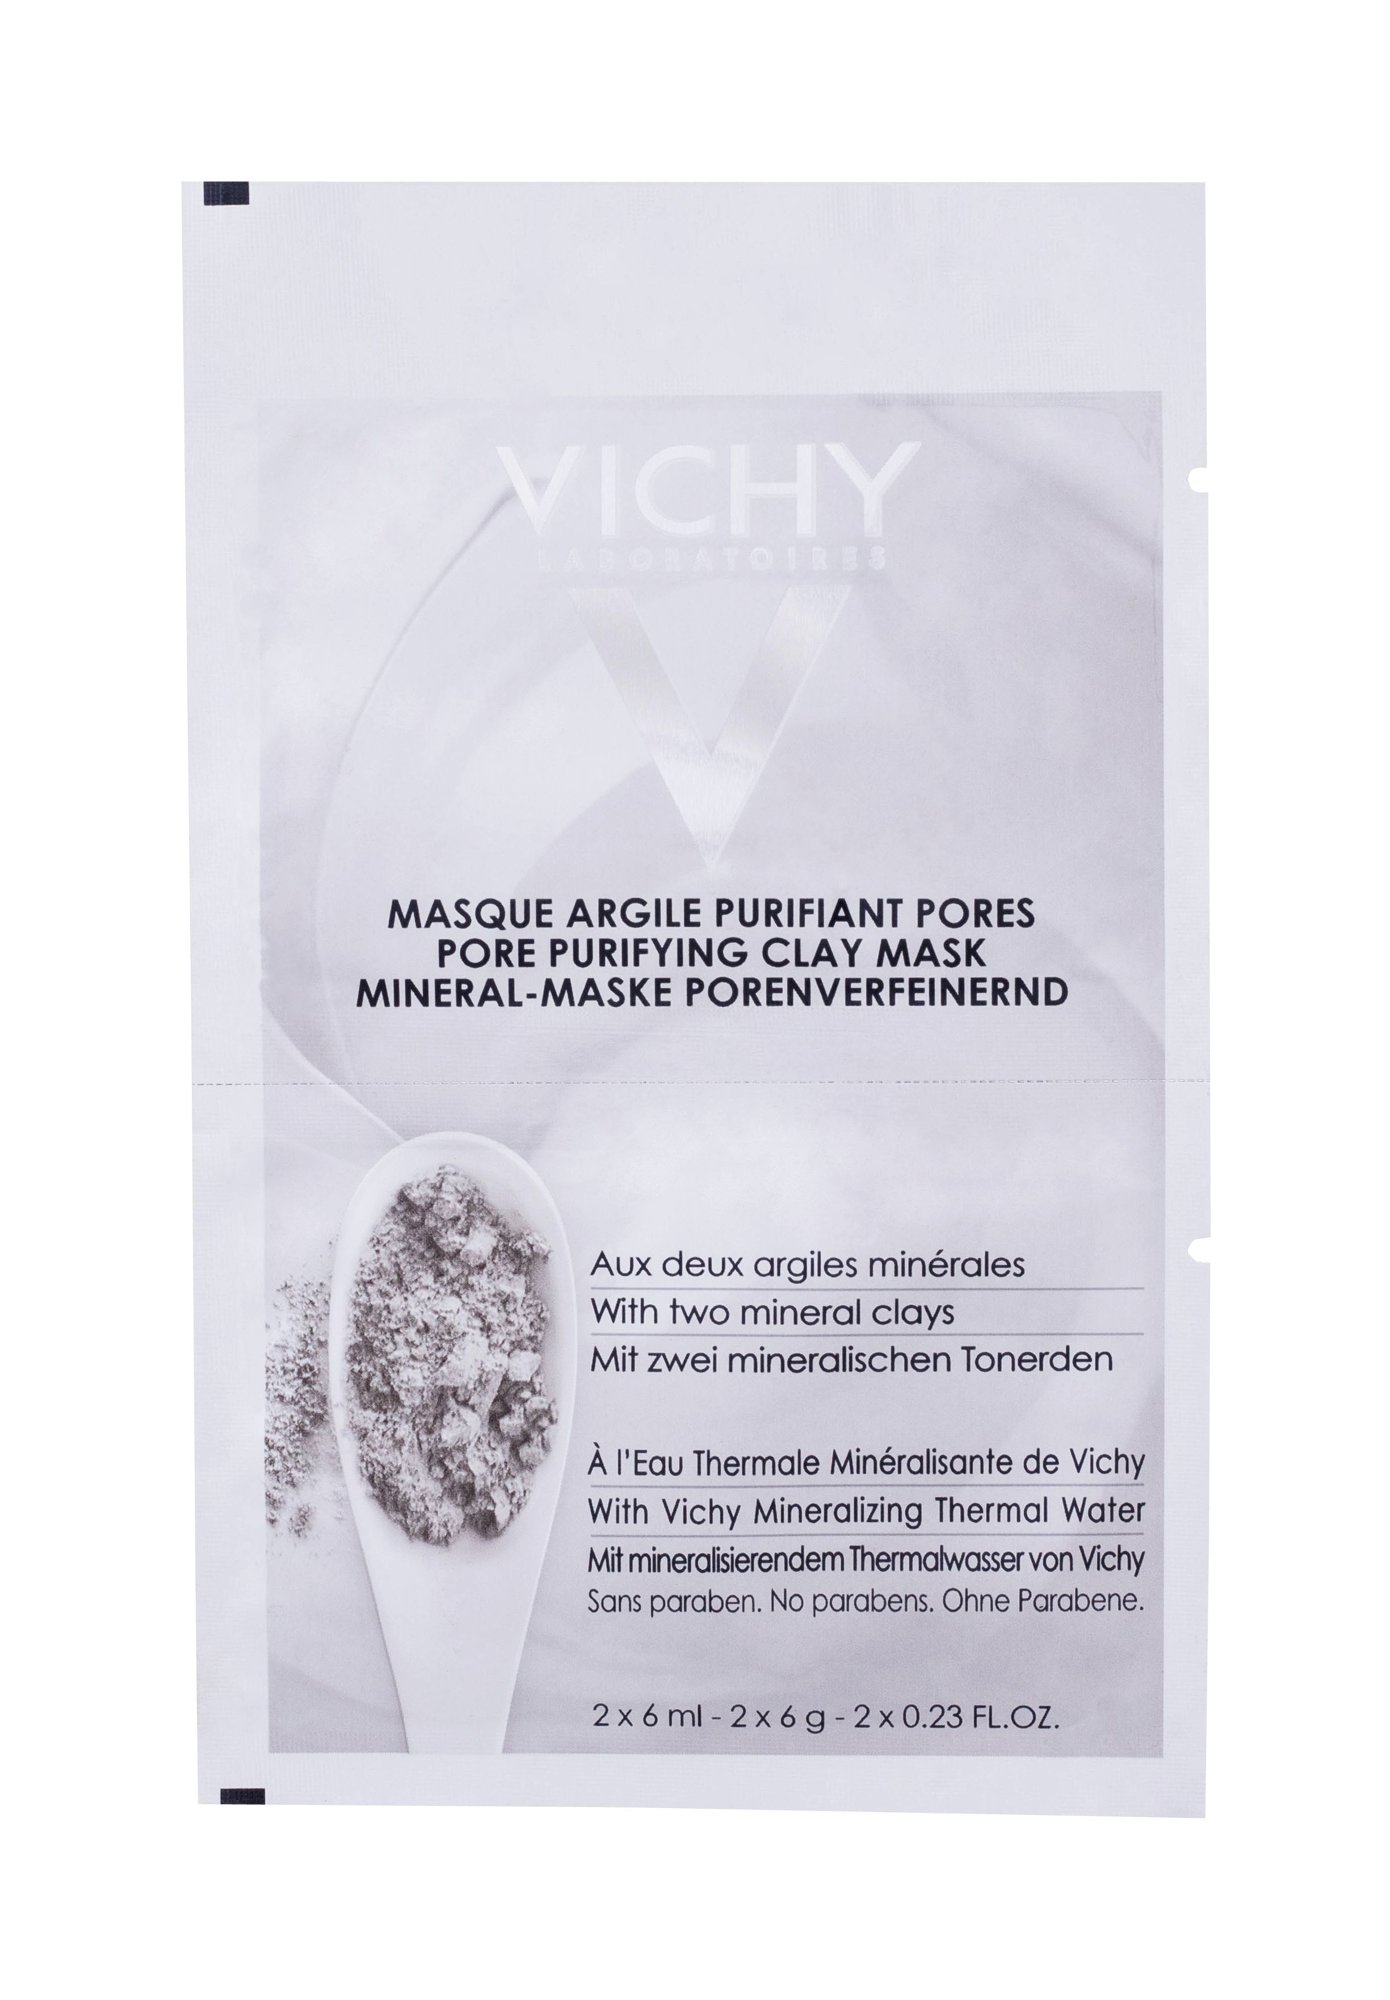 Vichy Pore Purifying Clay Mask Face Mask 2x6ml